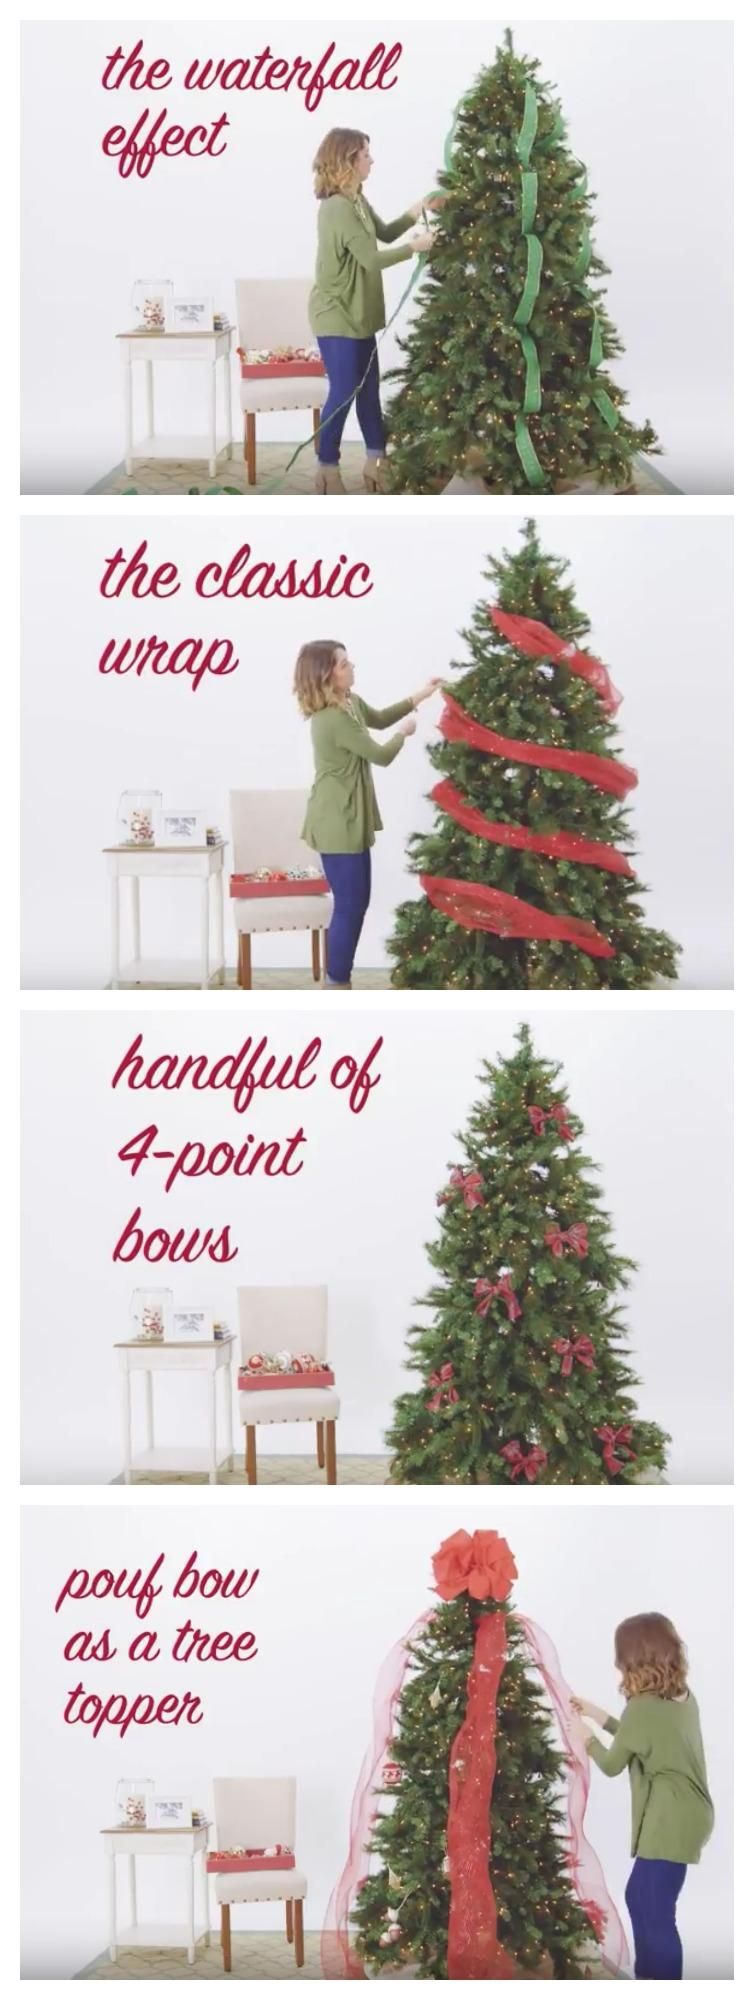 if youre looking for a creative way to decorate your tree this holiday watch our how to video with 5 ways to use ribbon on your christmas tree - How To Decorate A Christmas Tree With Ribbon Video